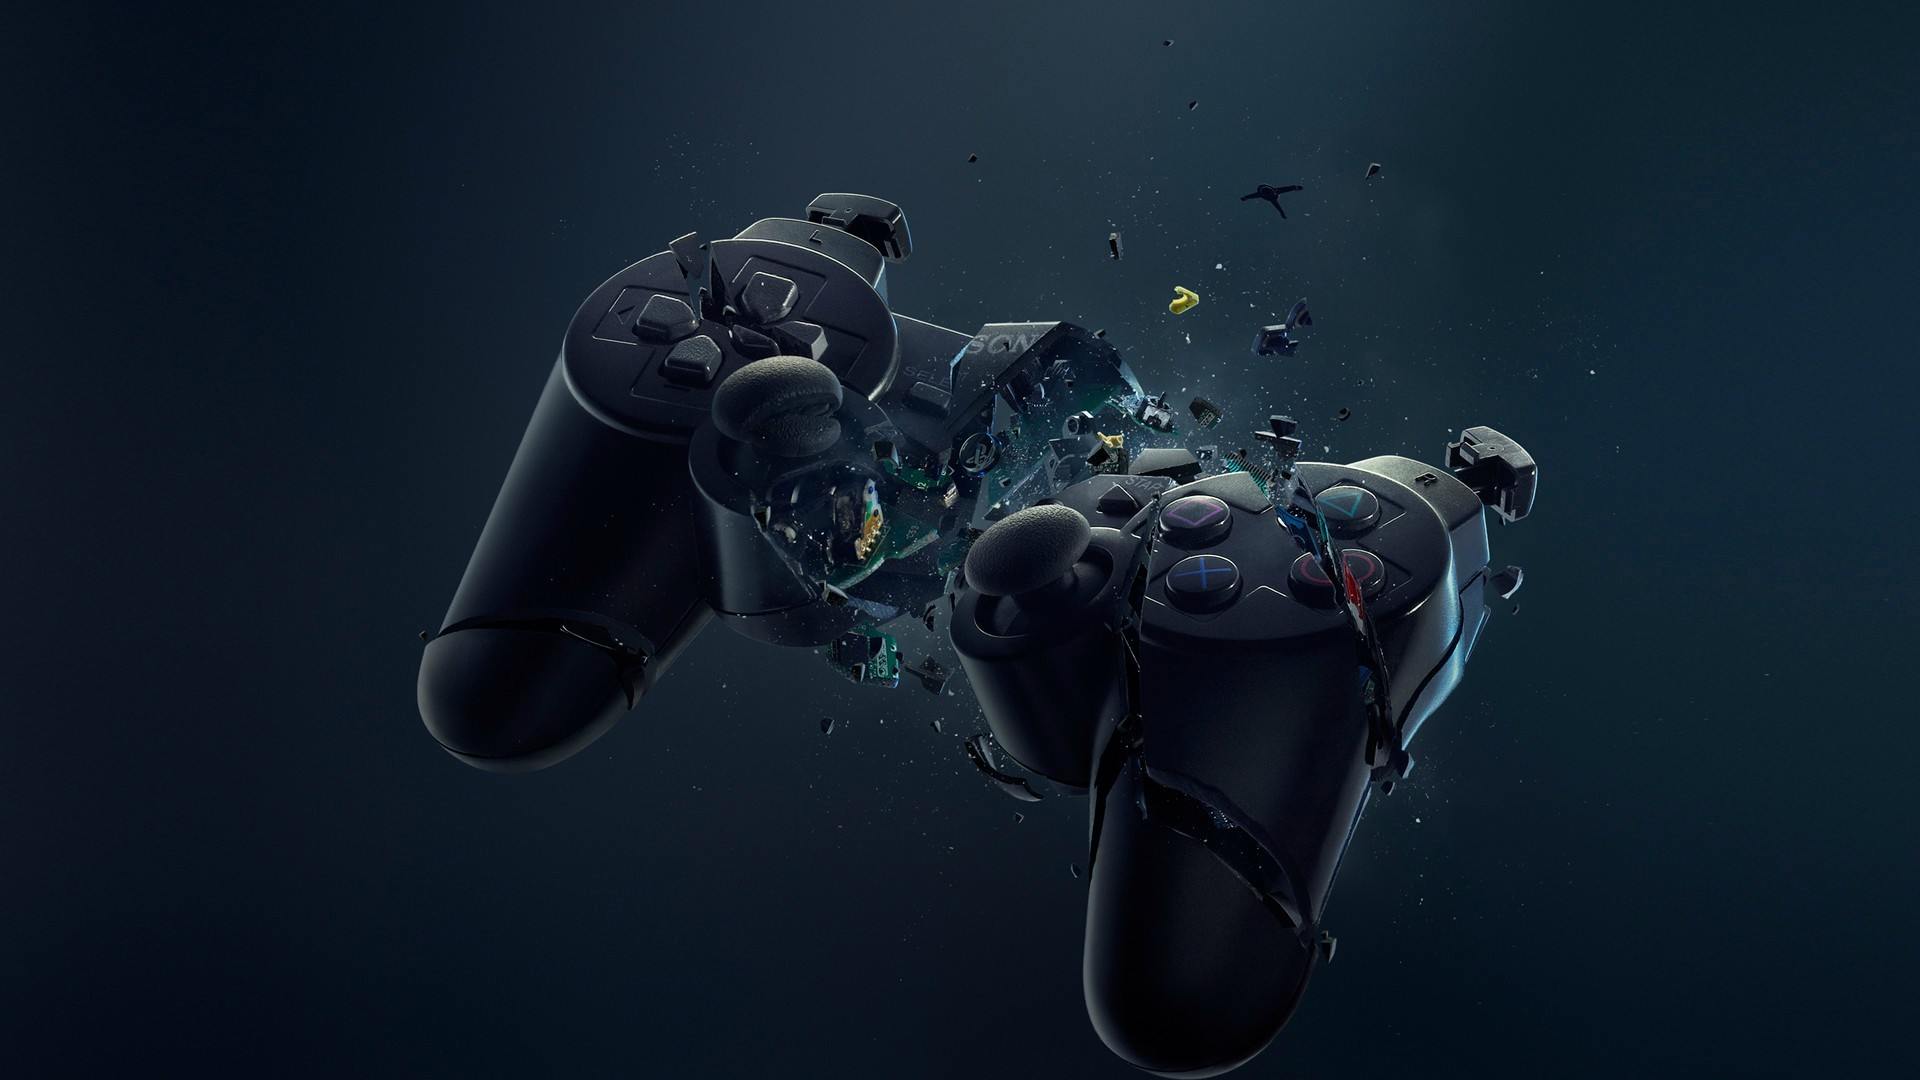 Video Game Images Wallpaper (81+ images)